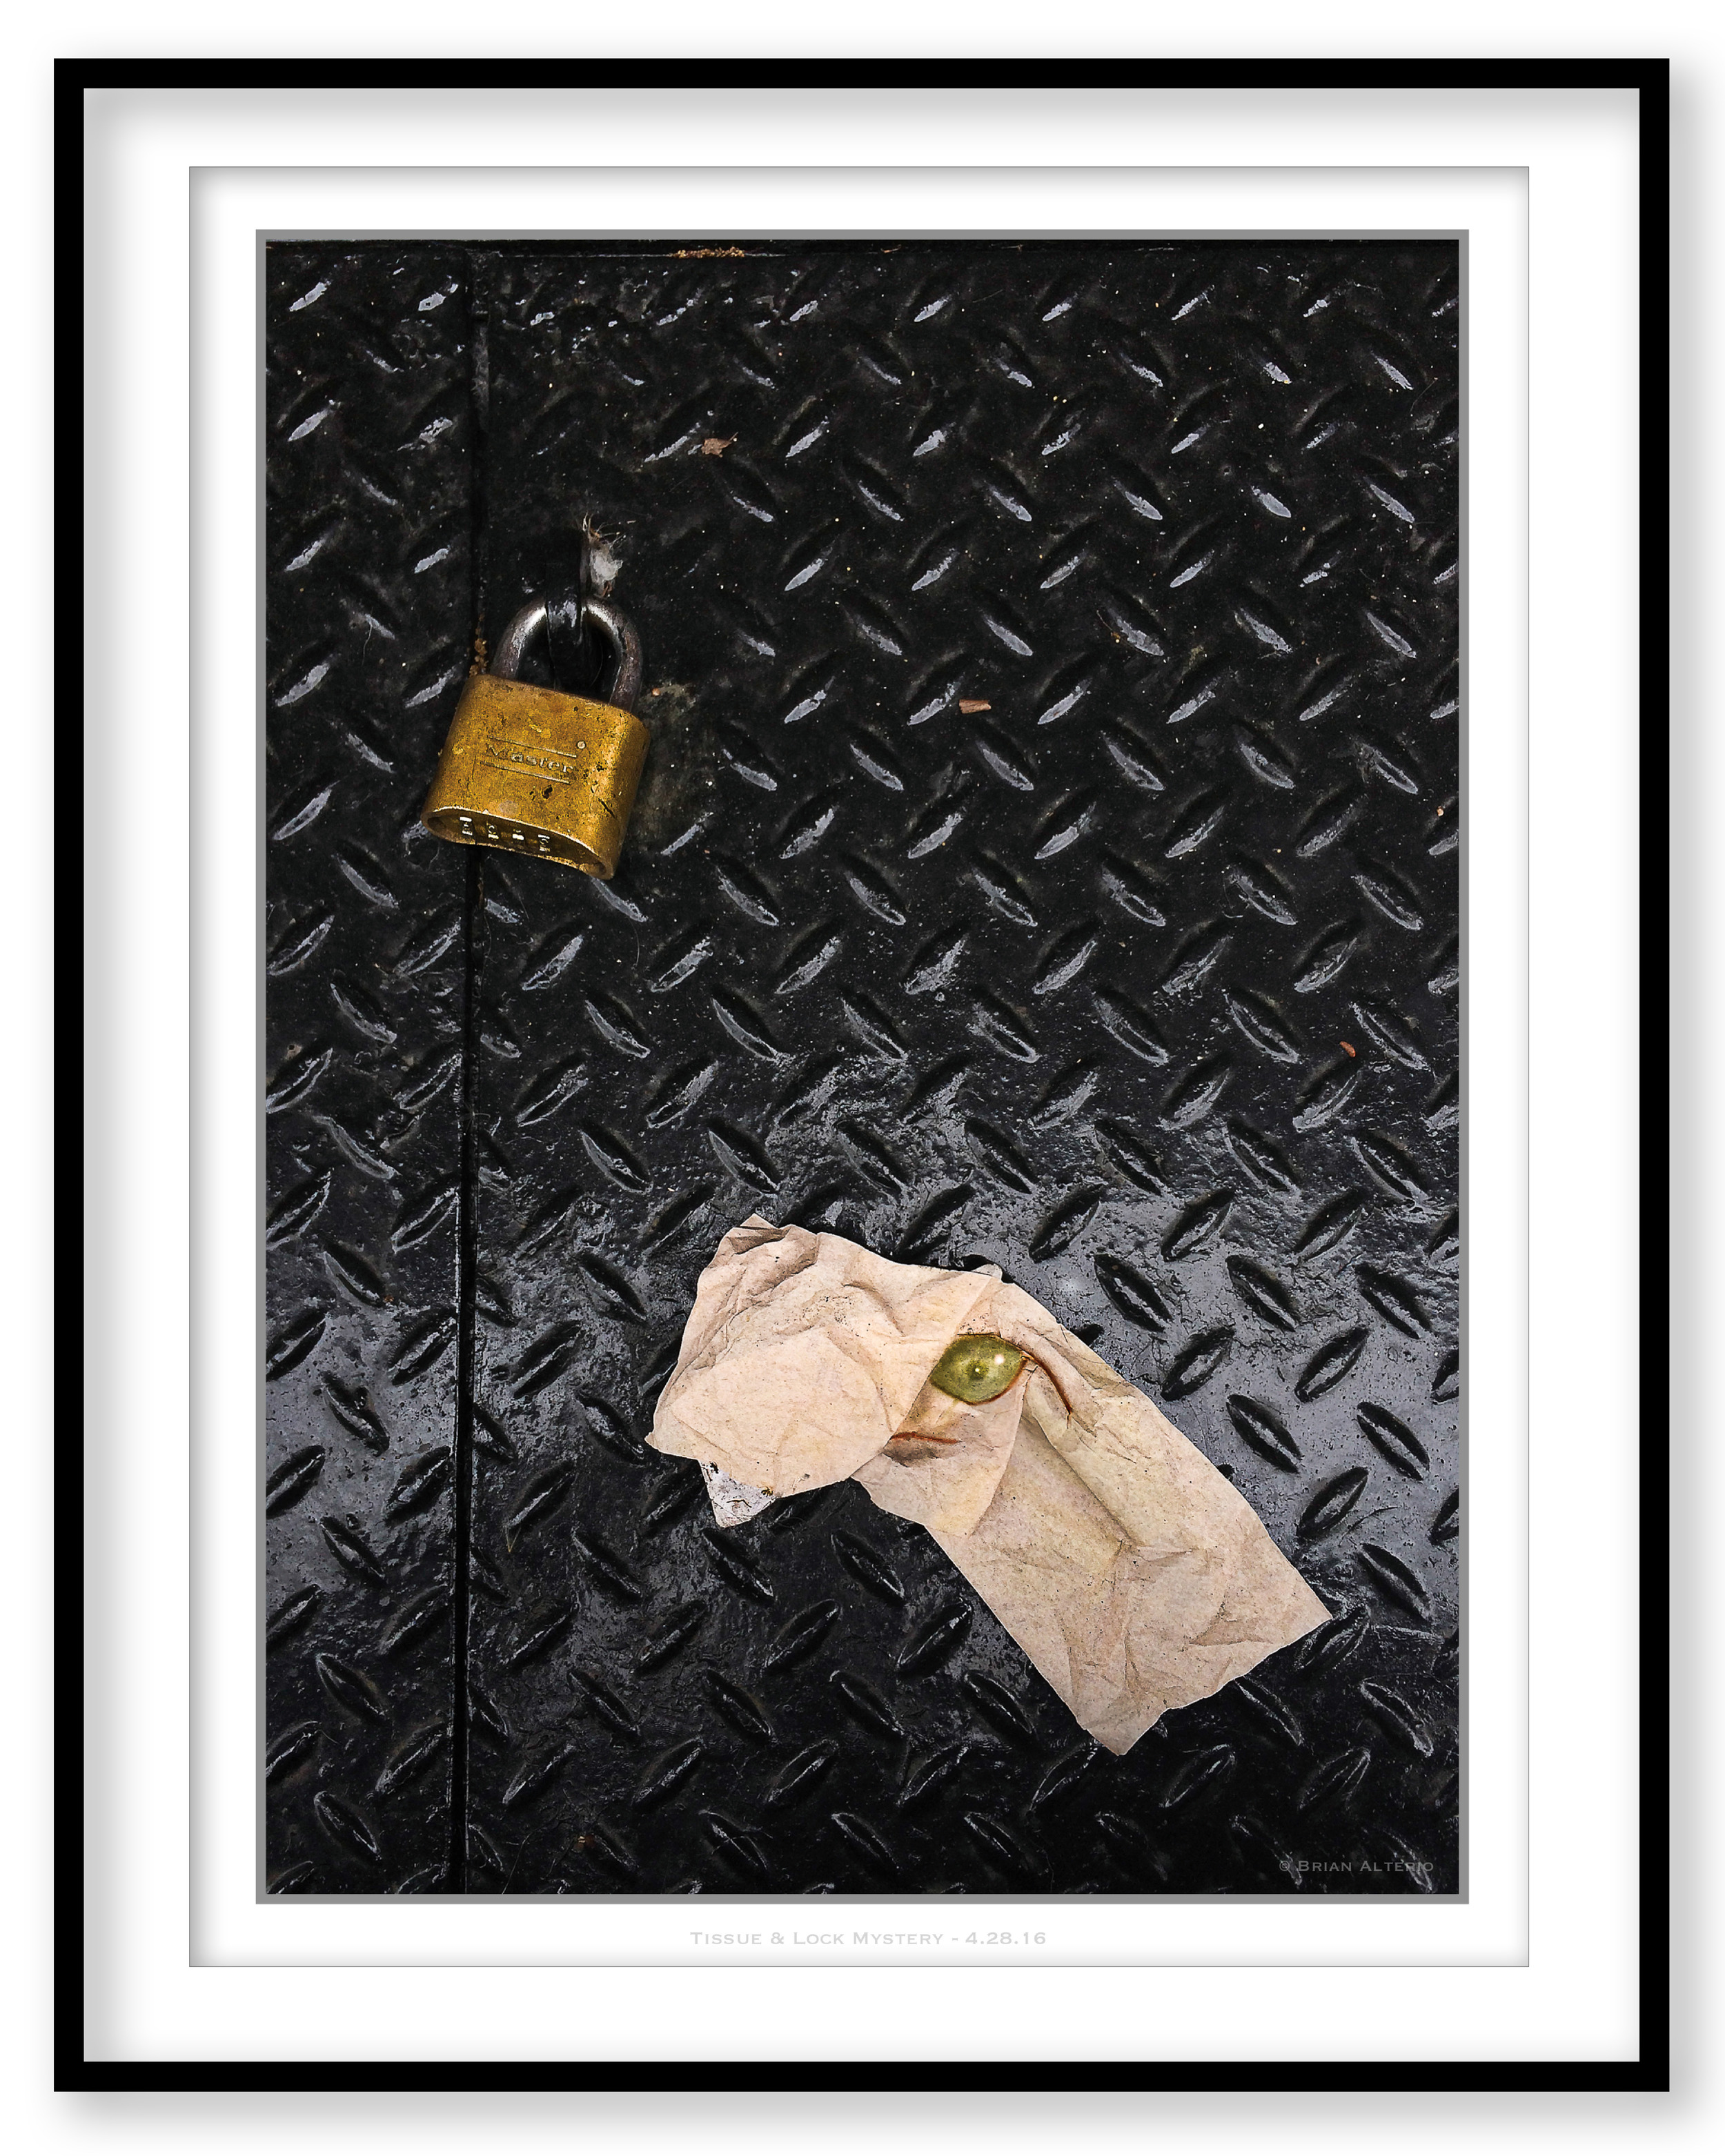 Tissue & Lock Mystery - 4.28.16 - Framed.jpg